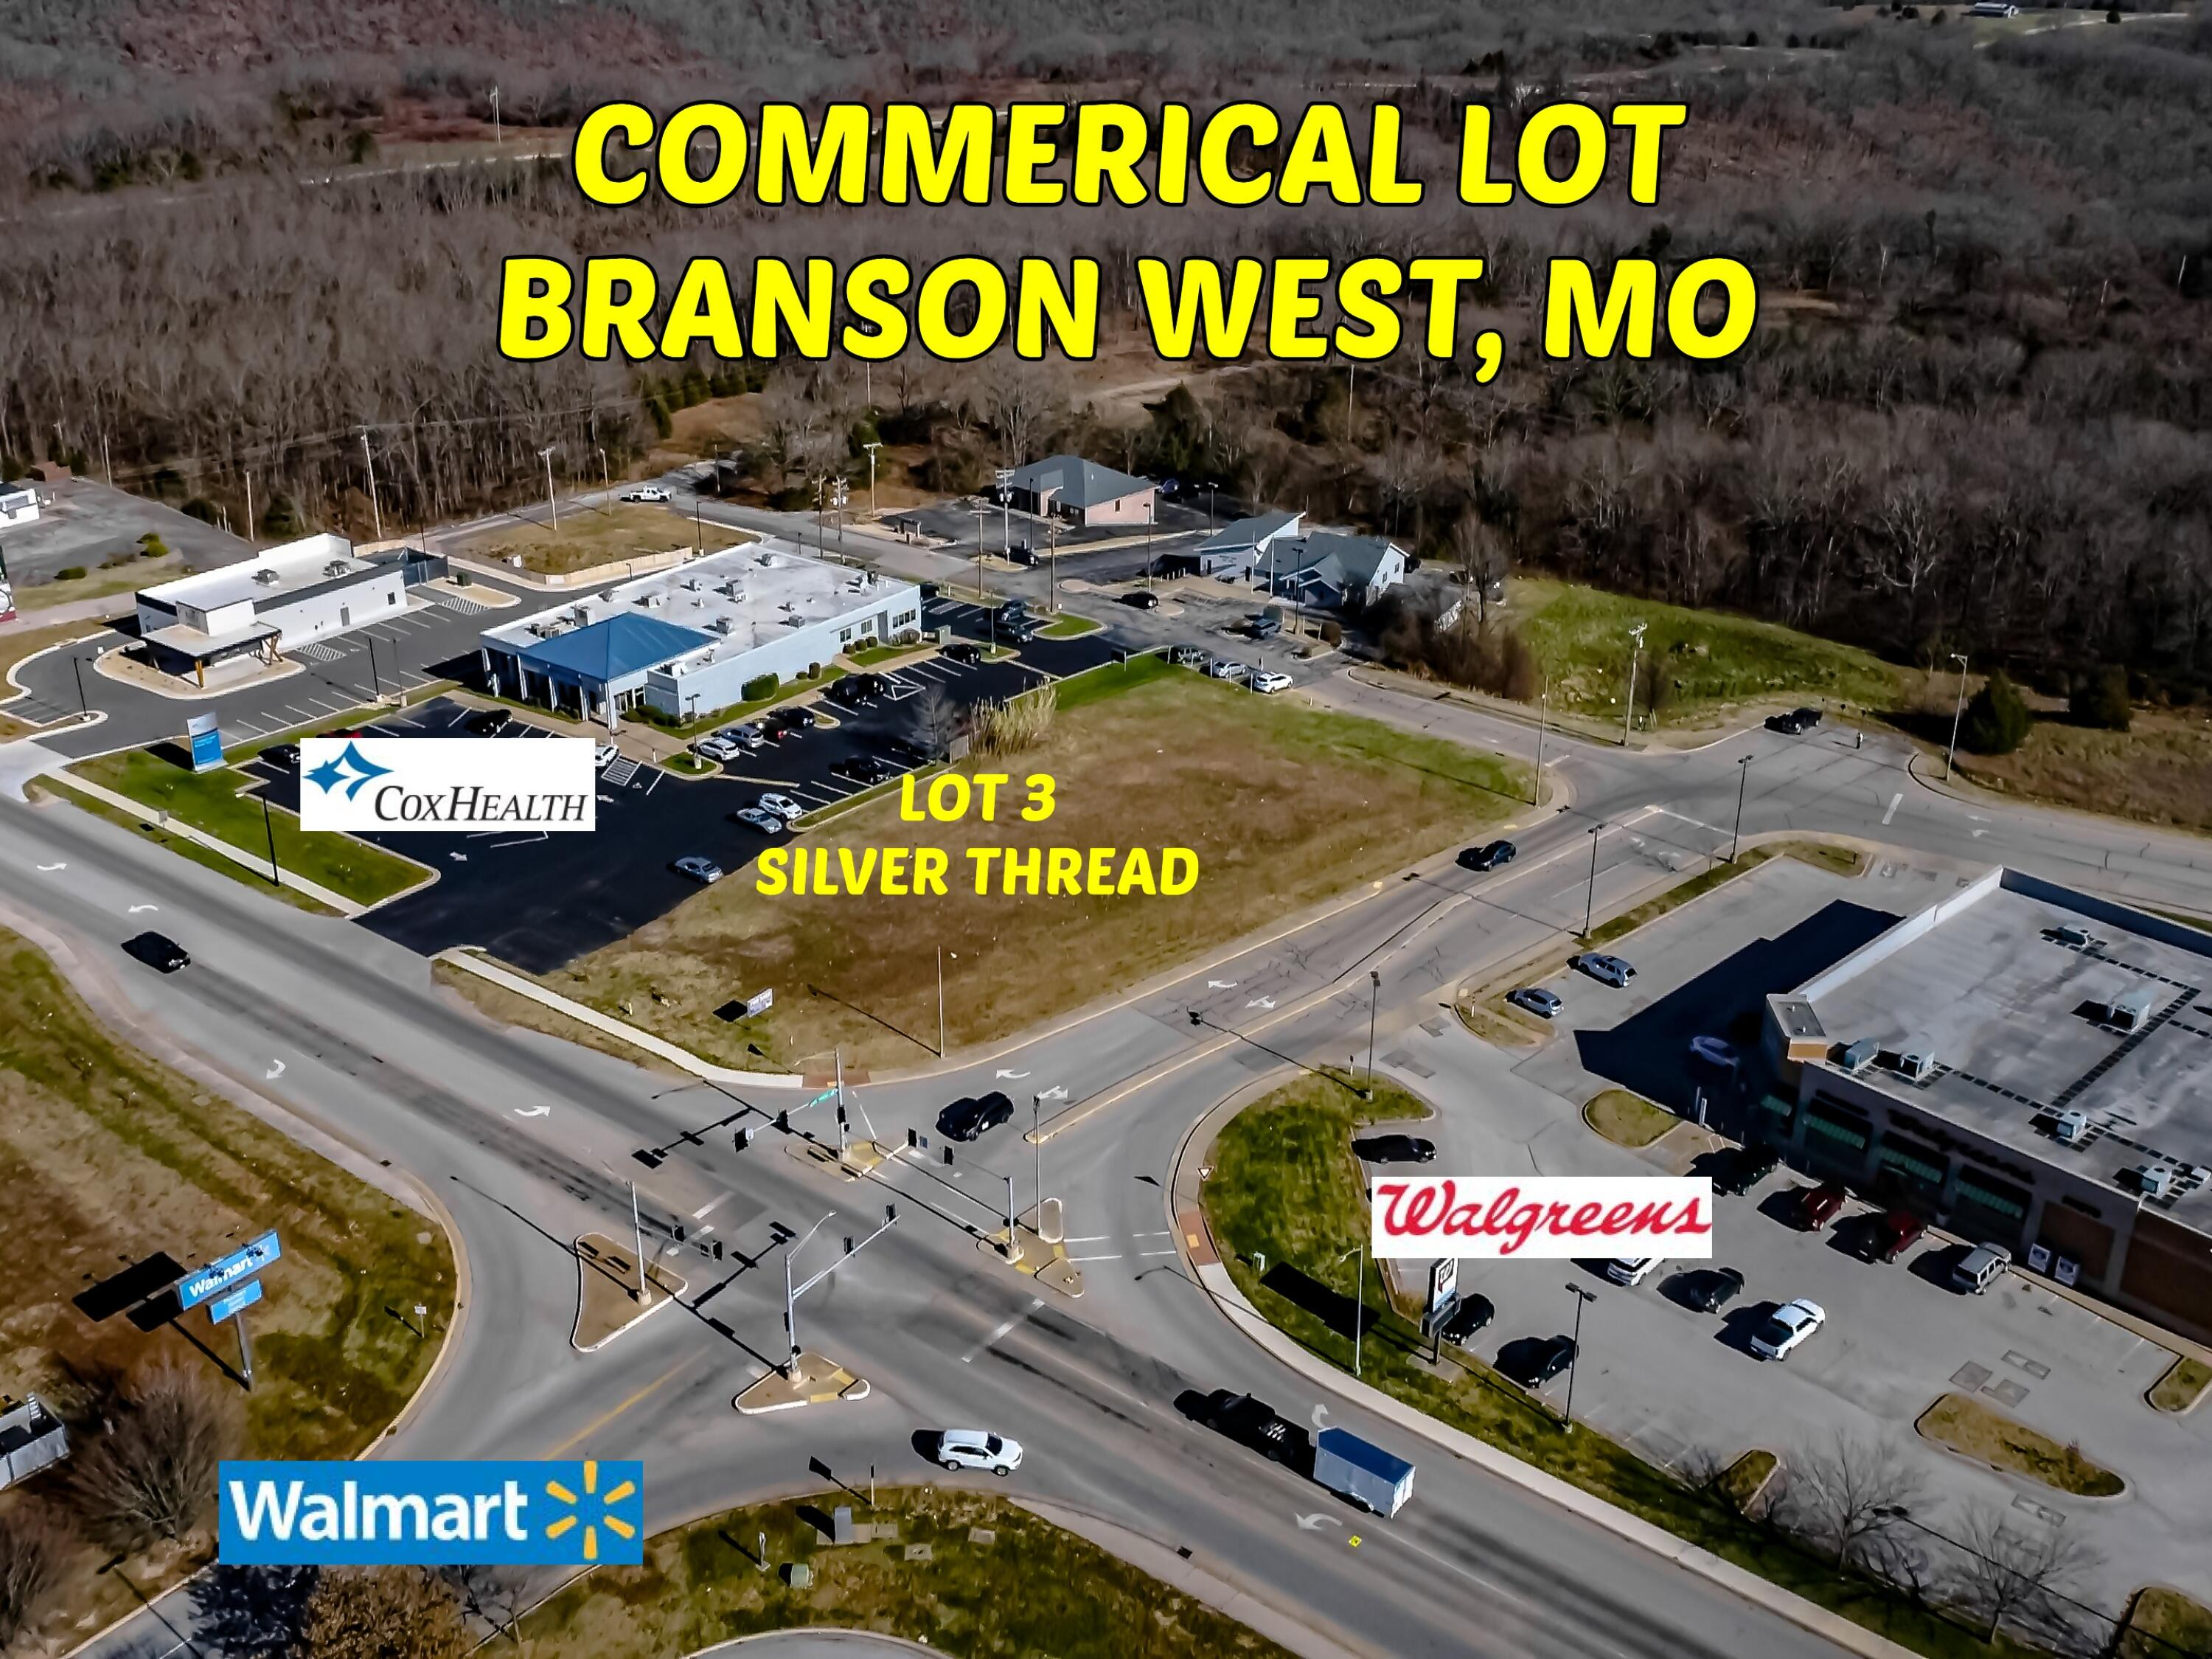 18410 Business 13, Branson West, MO 65737 - Branson West, MO real estate listing